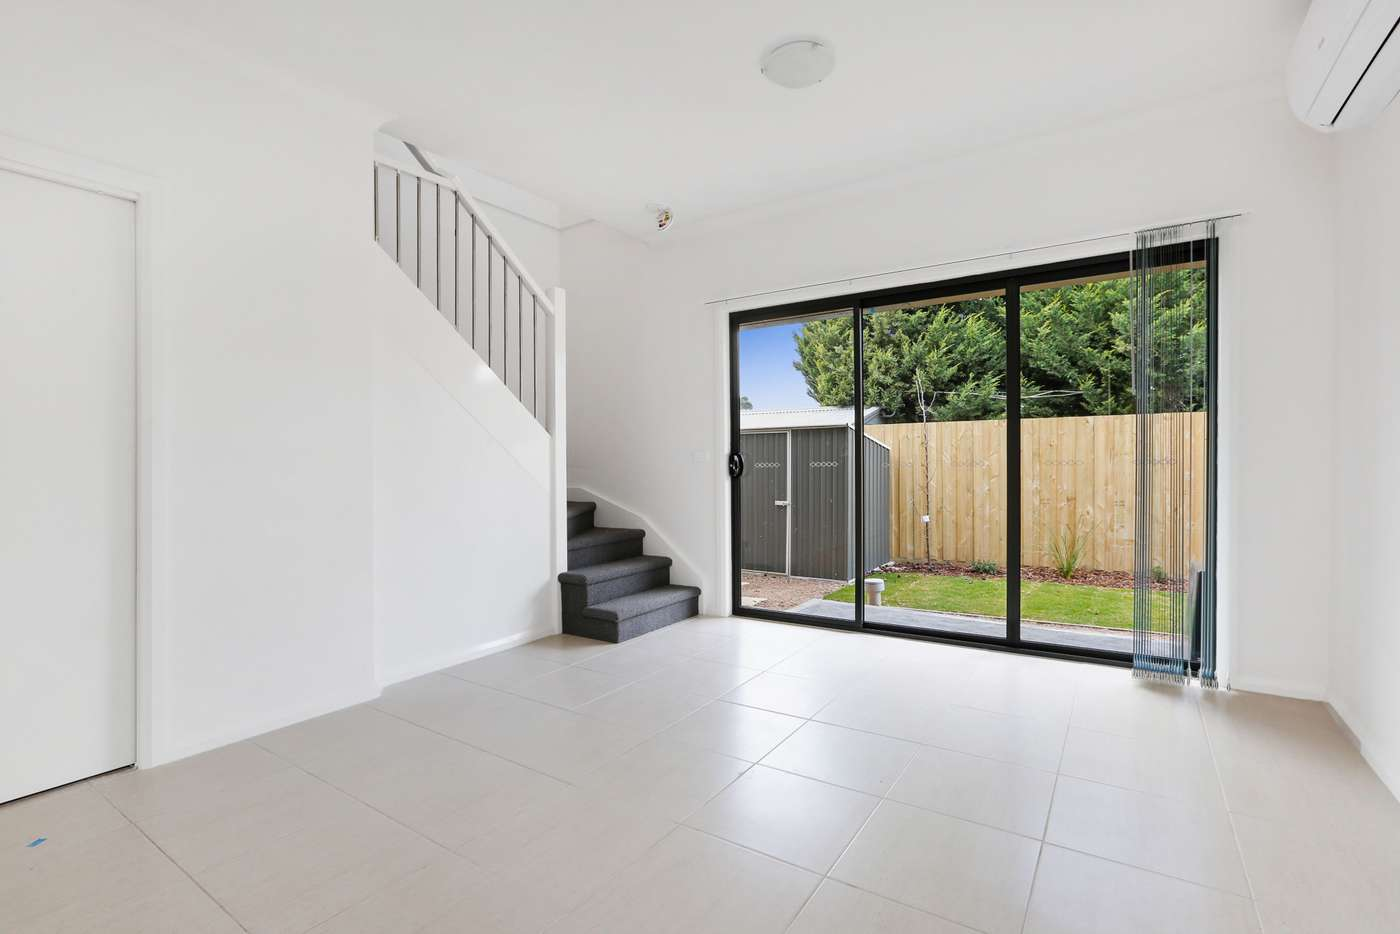 Main view of Homely townhouse listing, 2/24 Stanhope Street, Broadmeadows VIC 3047